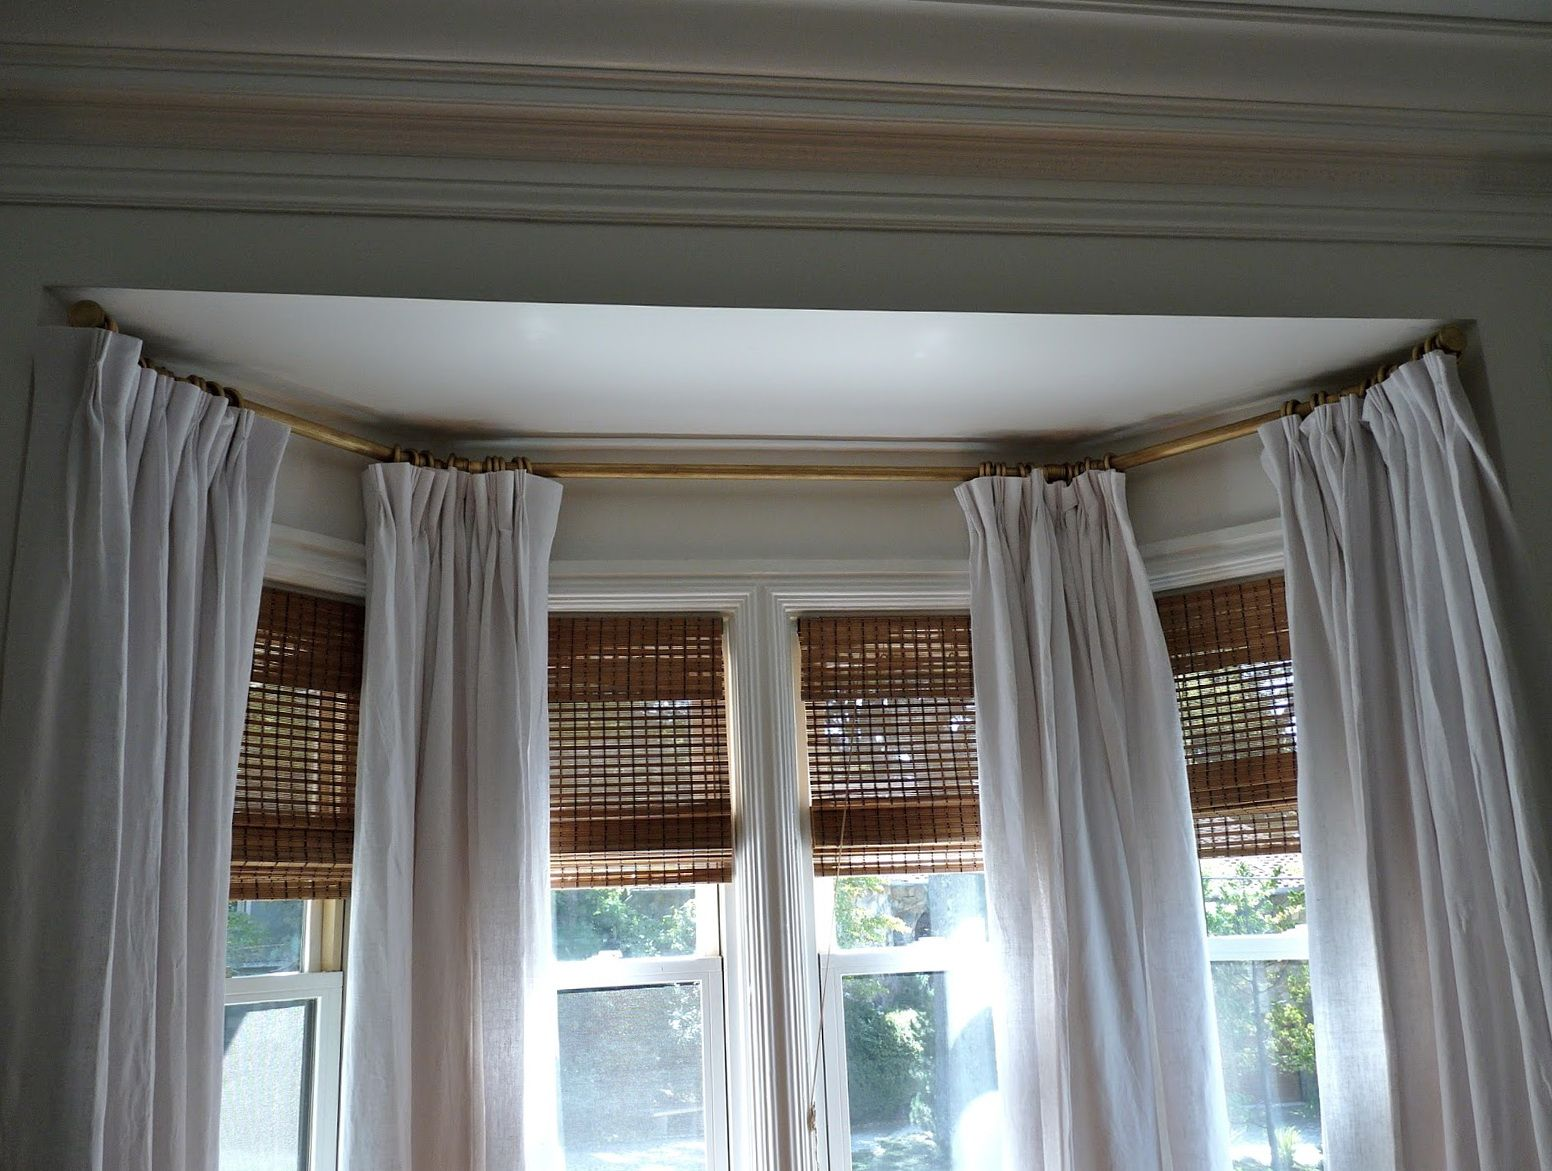 bay window curtain track ceiling fix decorating bay. Black Bedroom Furniture Sets. Home Design Ideas